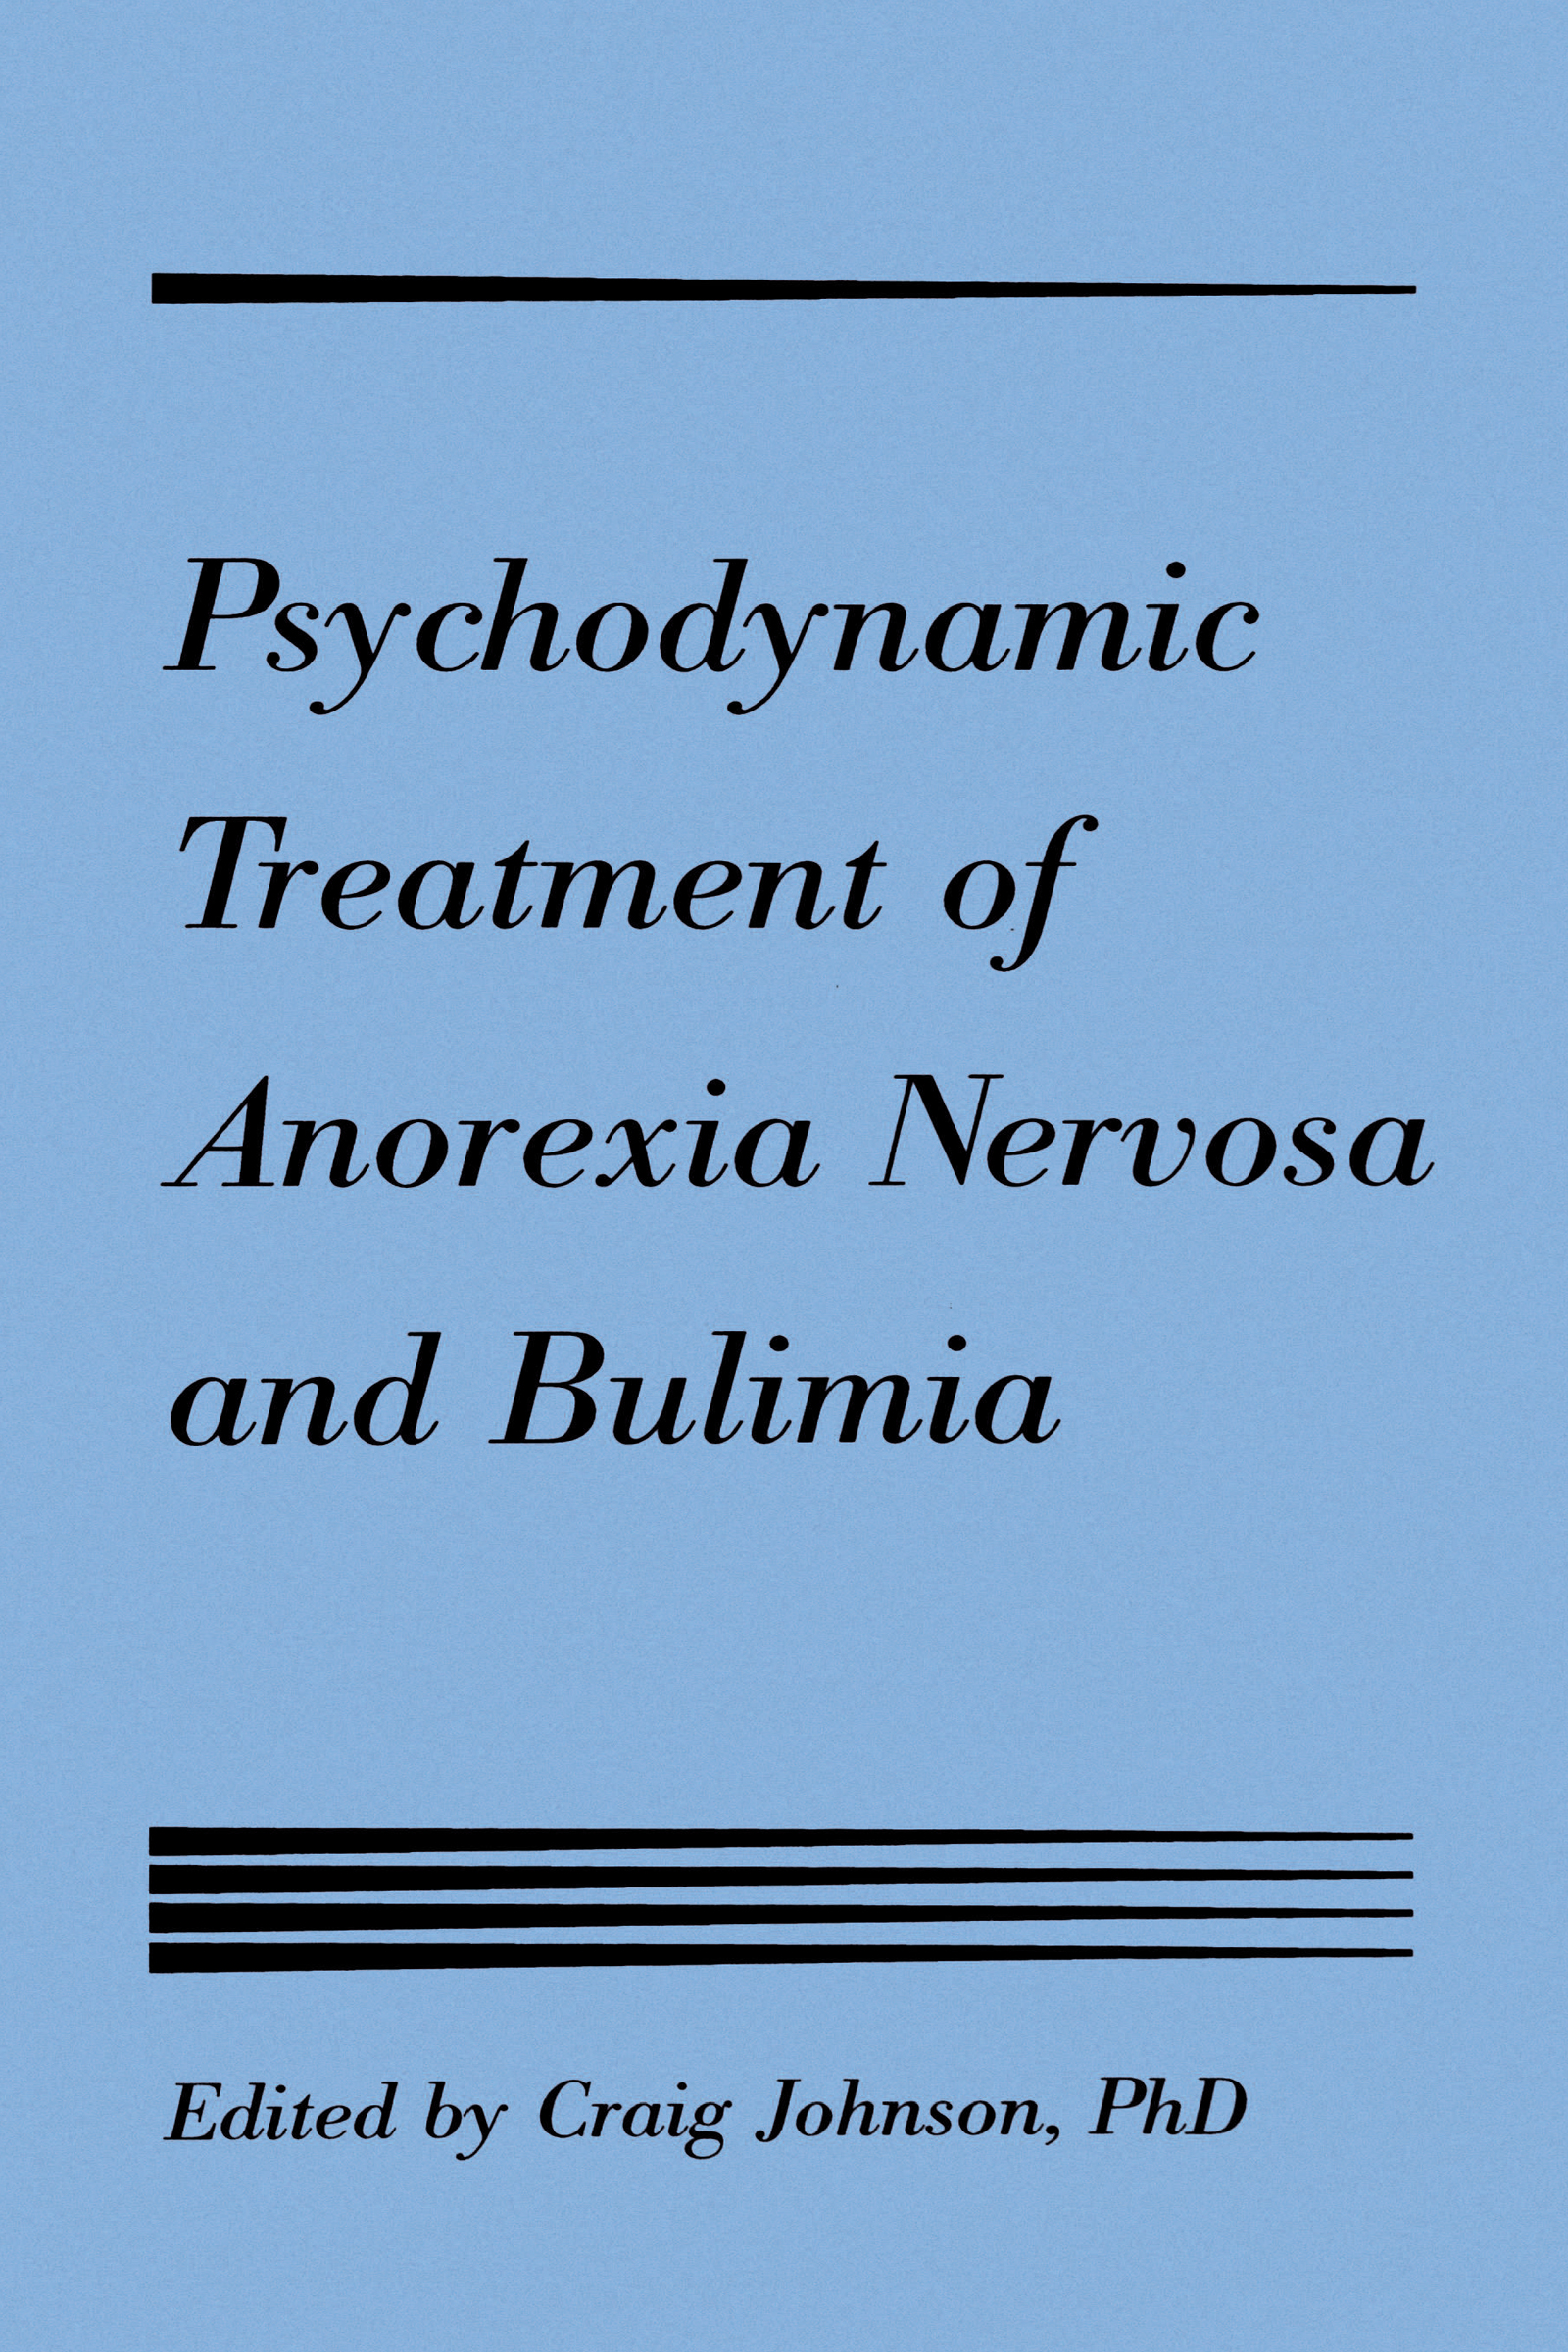 feminist therapy and anorexia nervosa essay